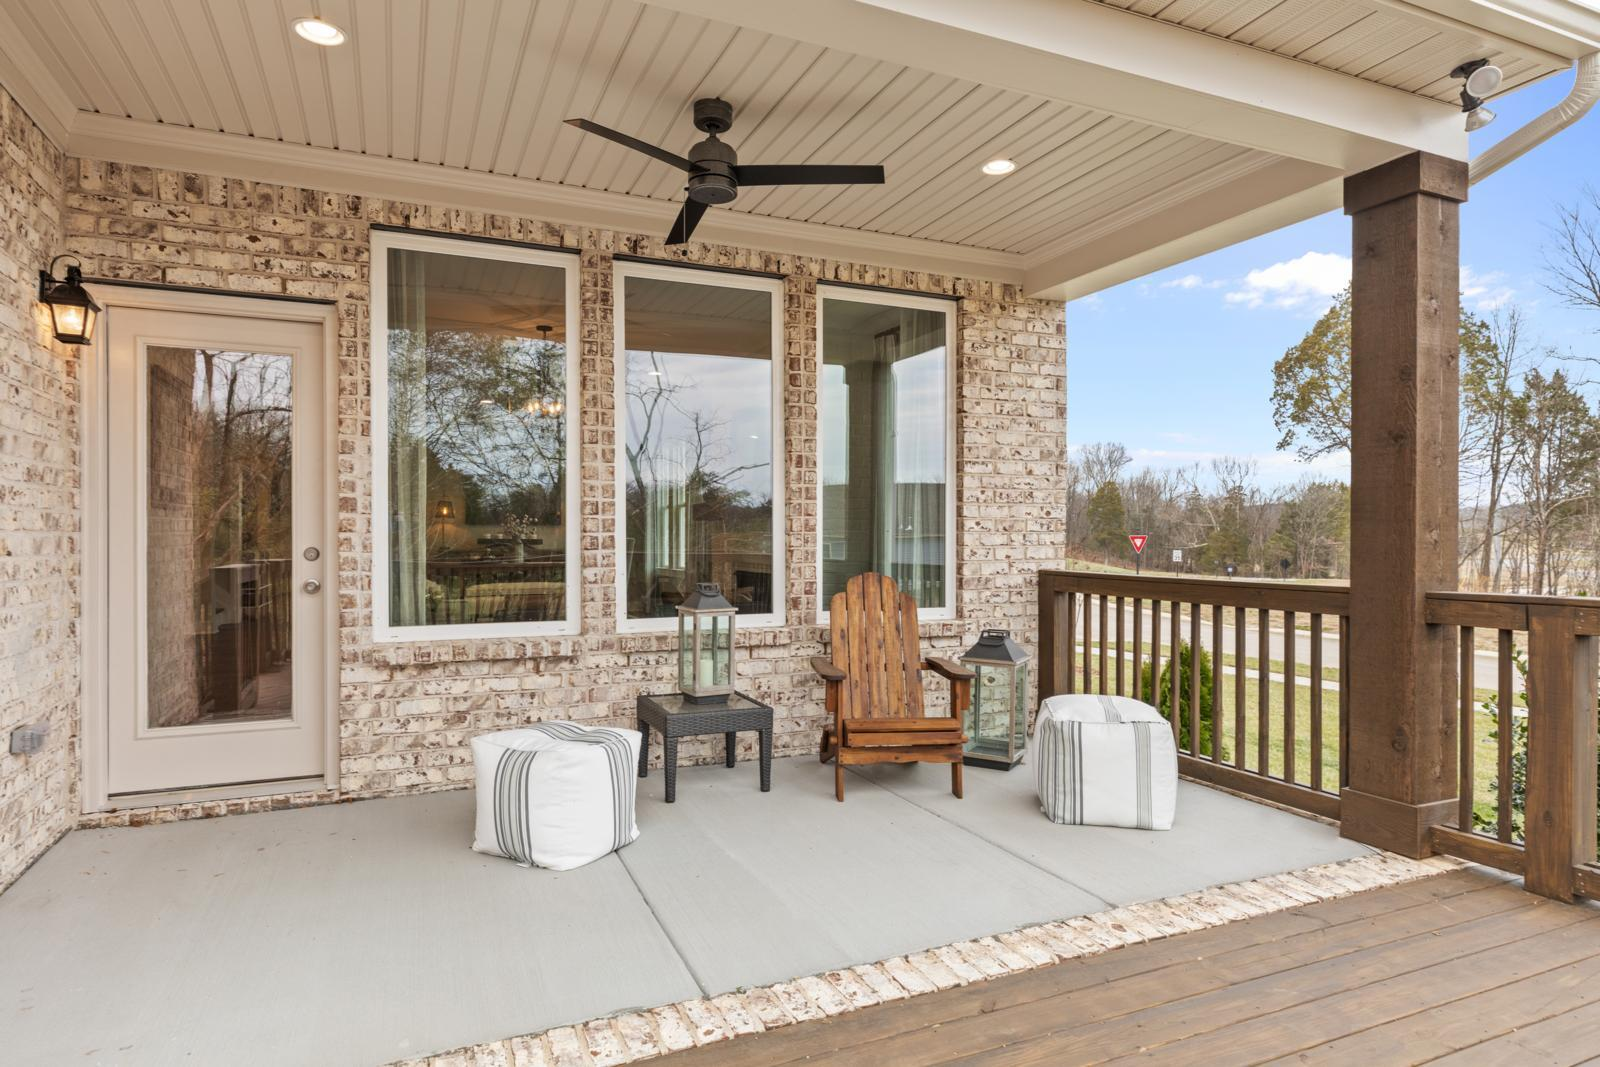 $489,900 - 5Br/4Ba -  for Sale in Beckwith Crossing, Mount Juliet